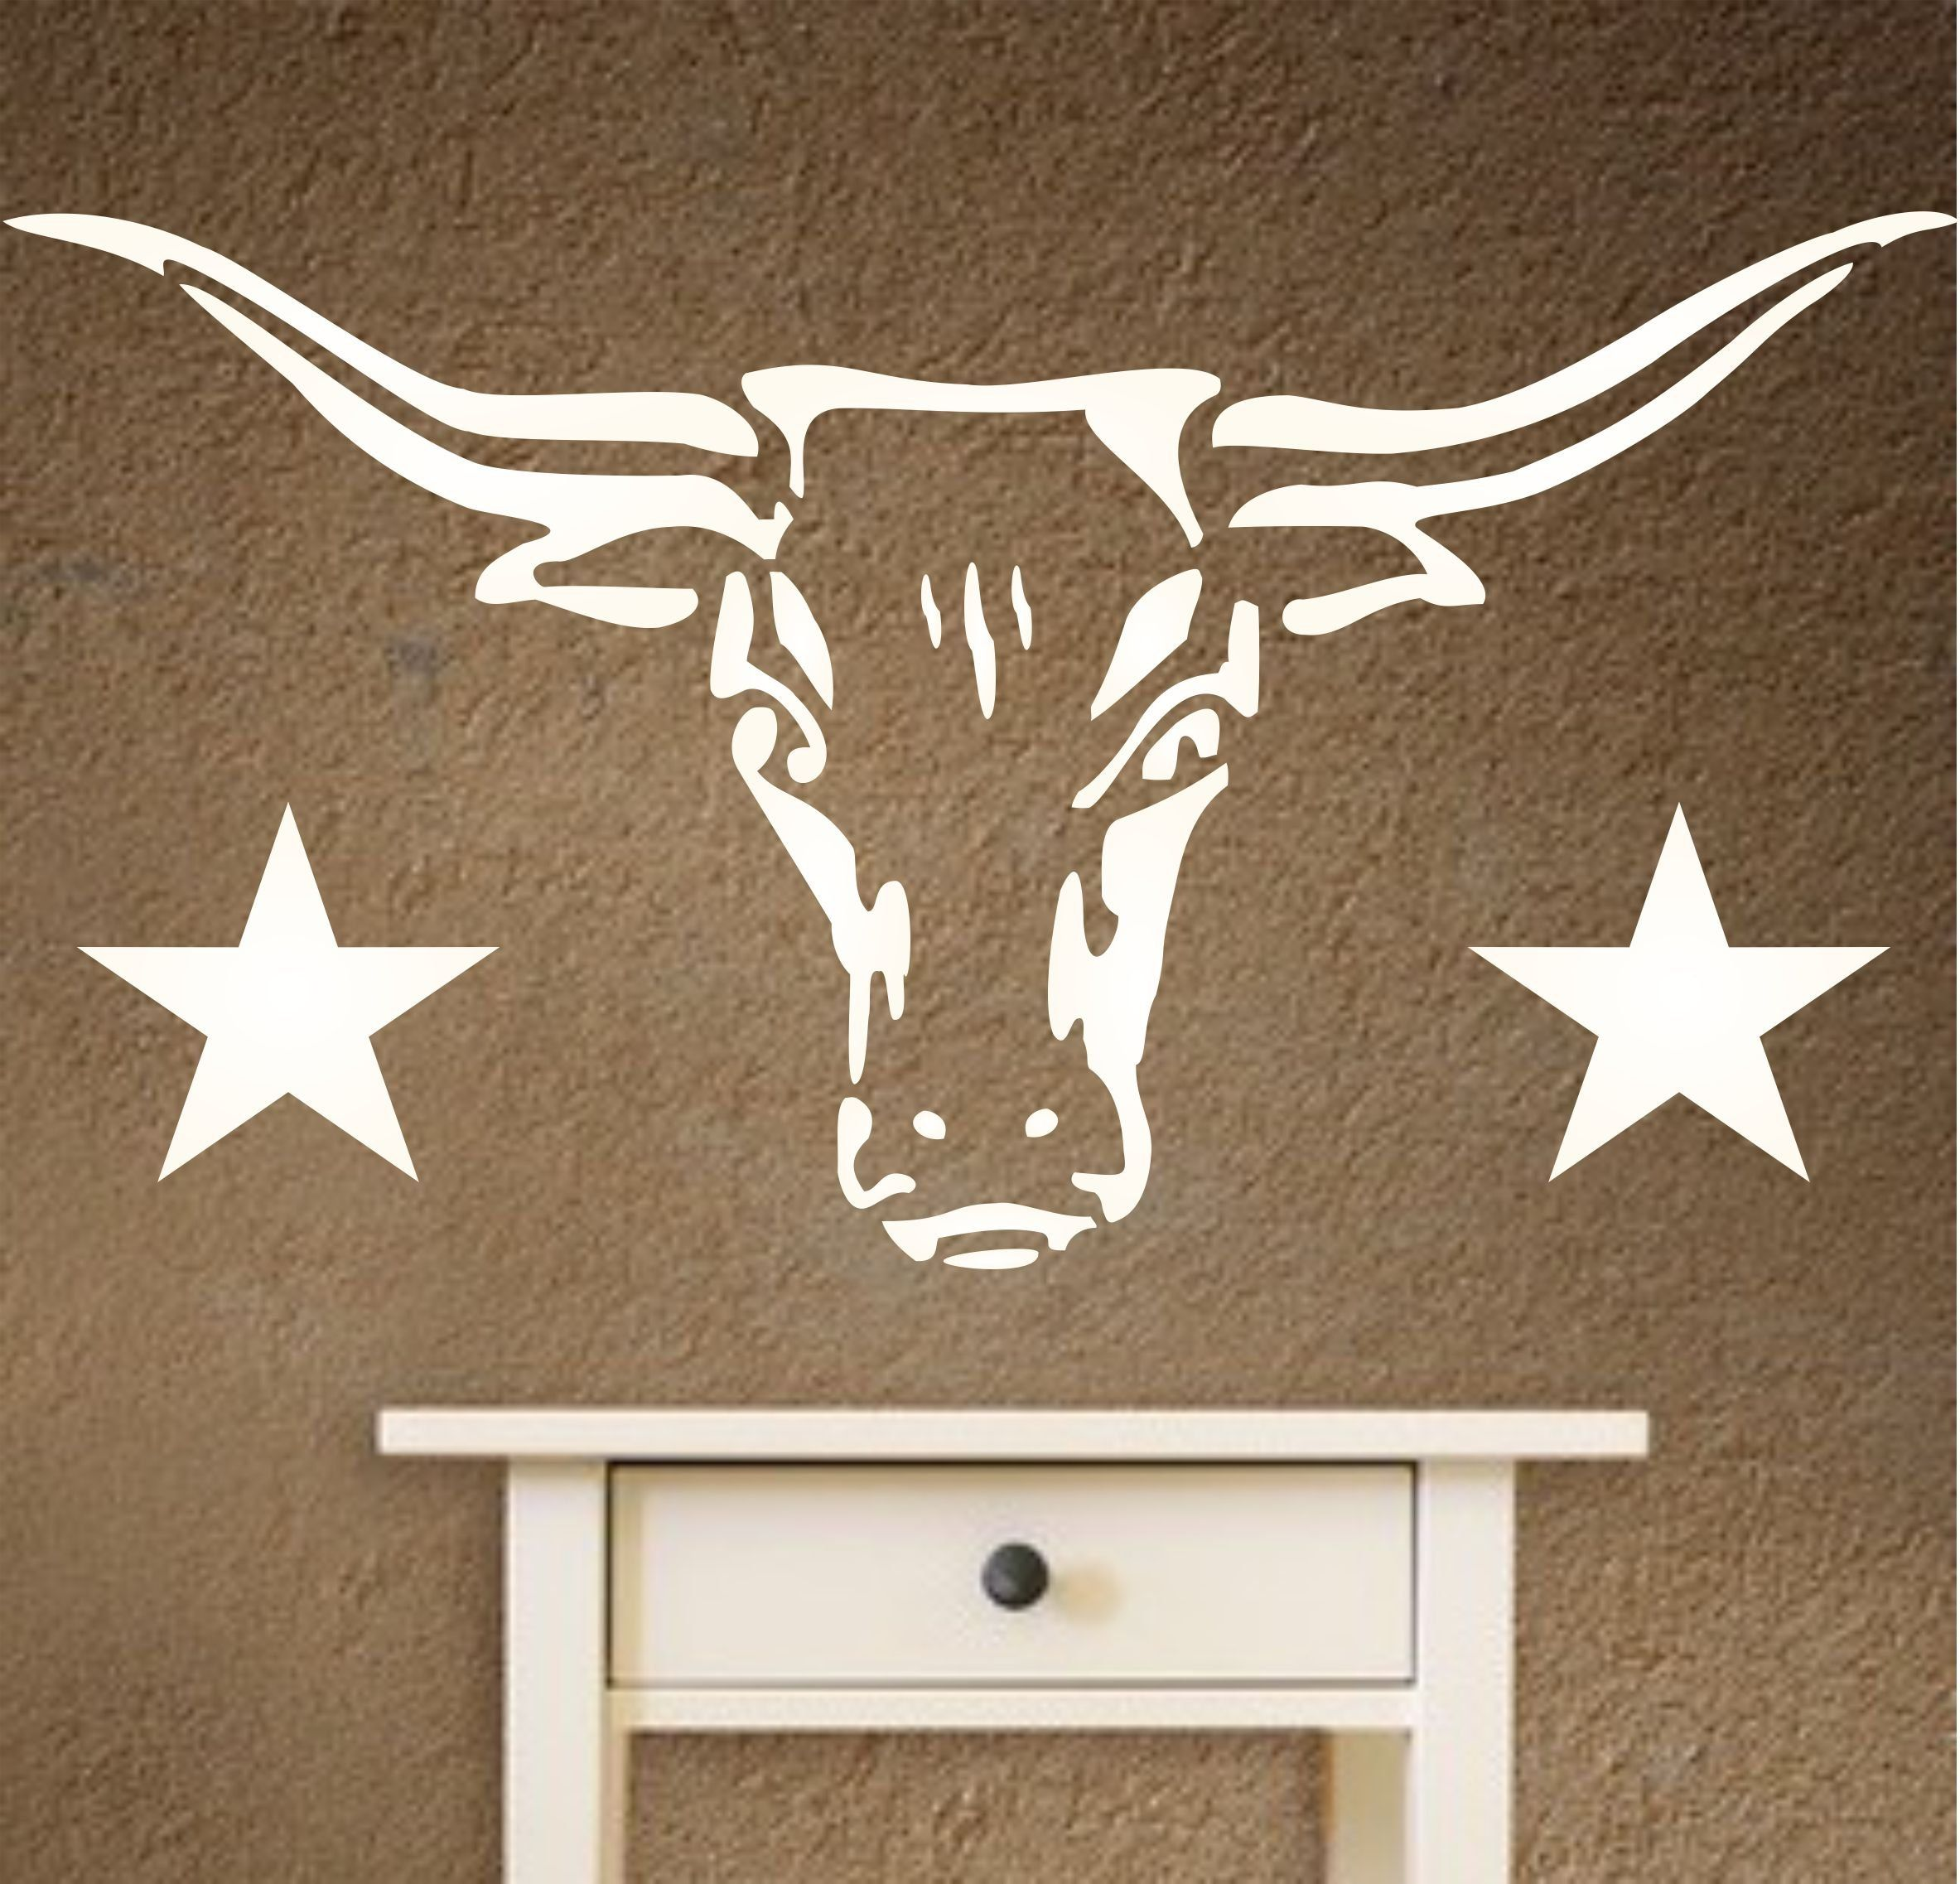 Longhorn stencil size 12w x 65h reusable wall stencils for longhorn stencil size 12w x 65h reusable wall stencils for amipublicfo Choice Image